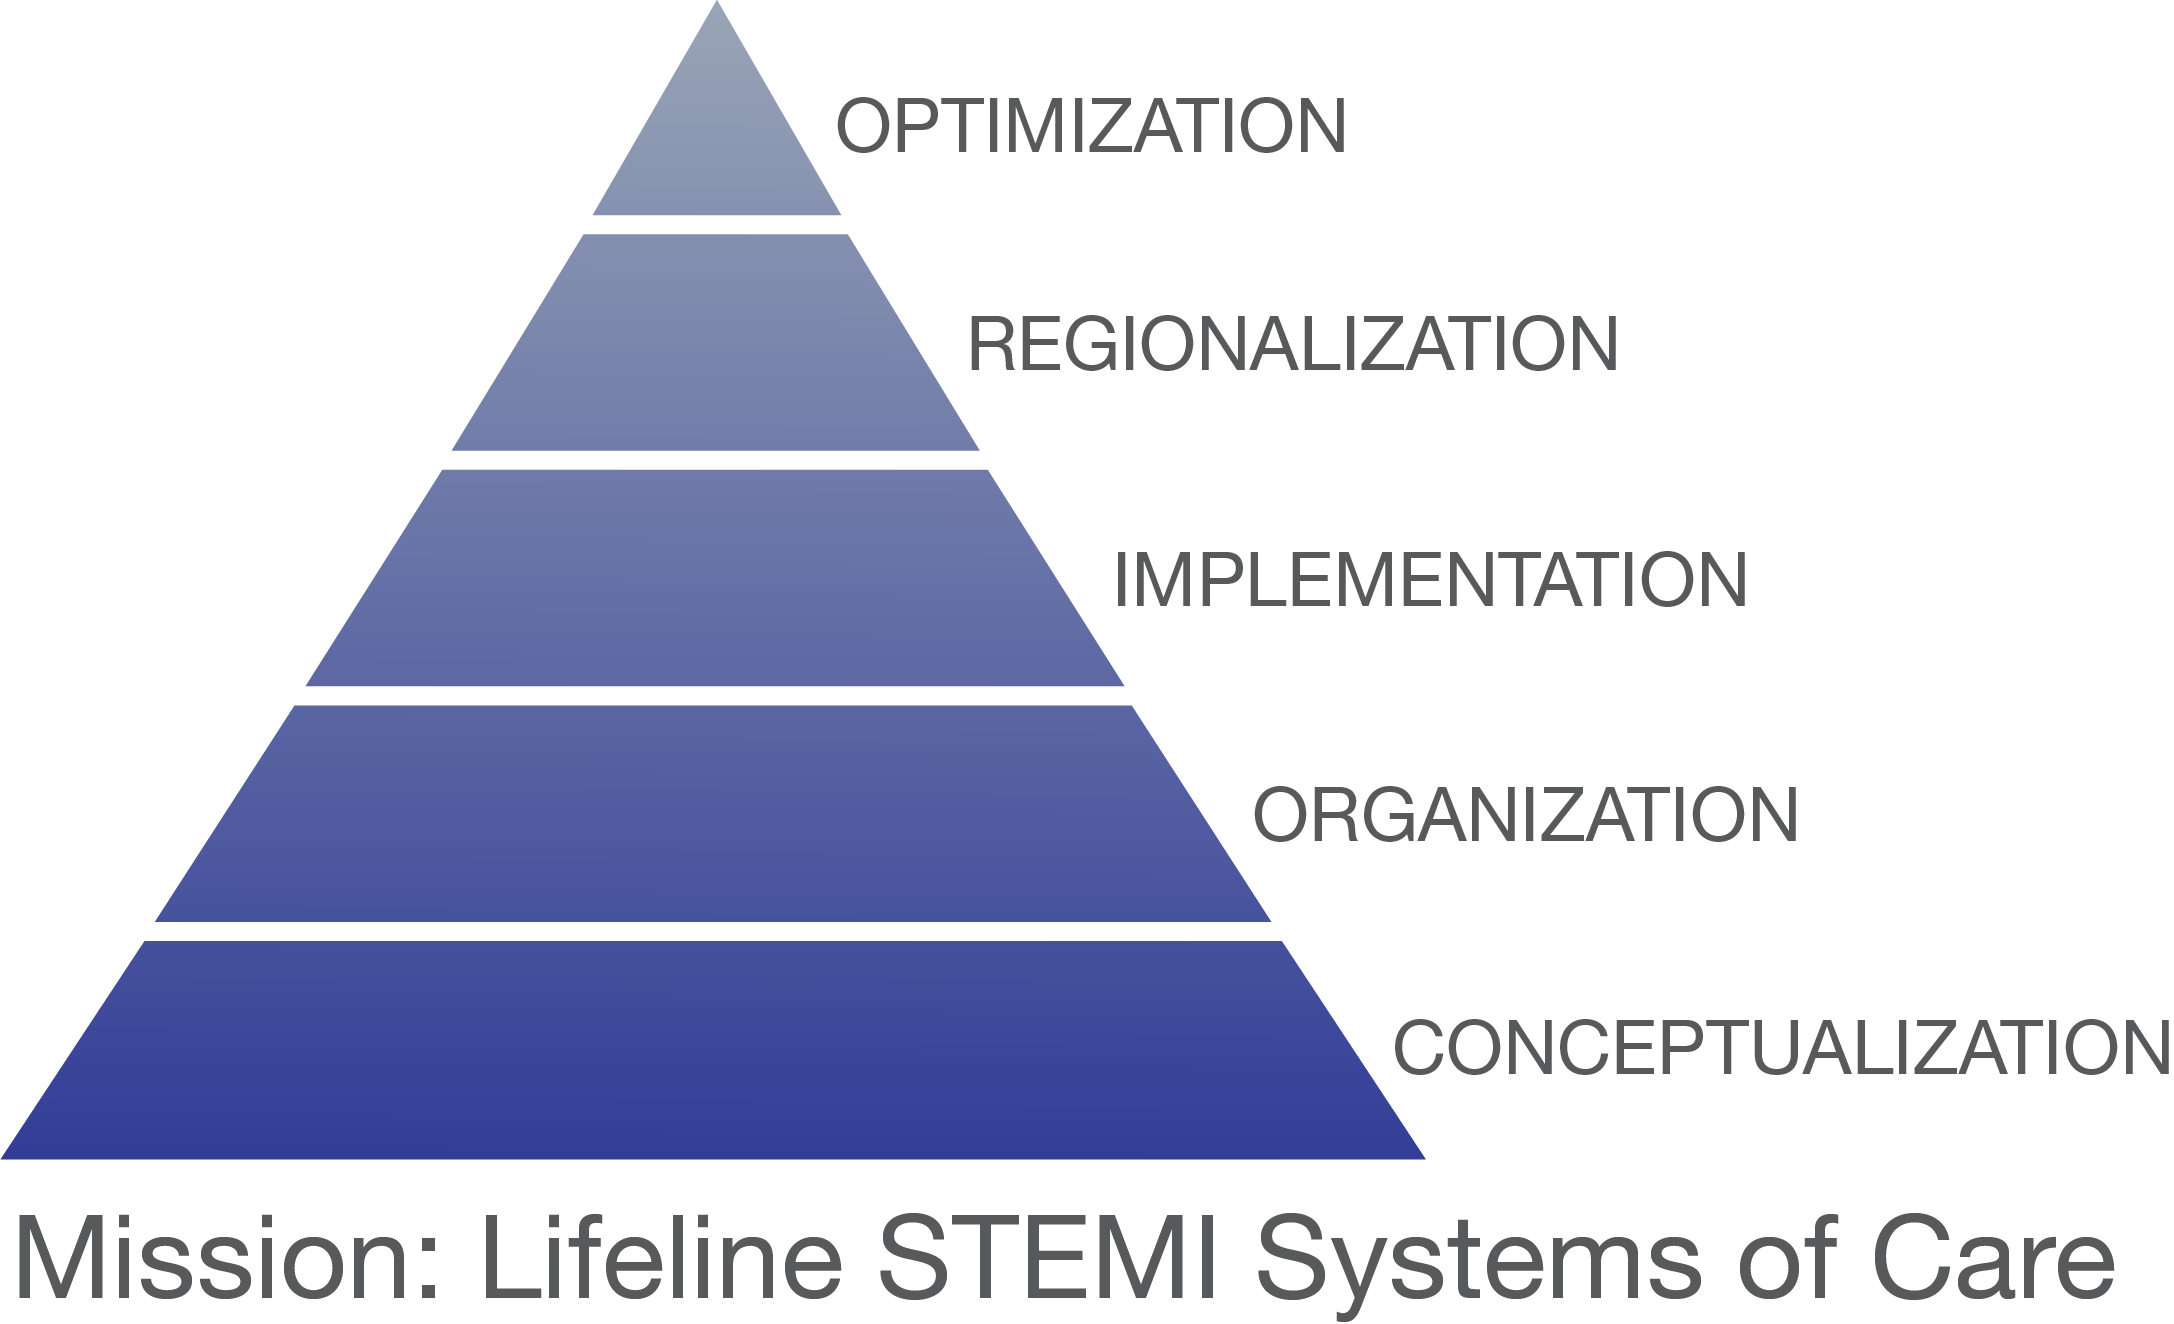 Mission Lifeline STEMI Systems of Care Pyramid